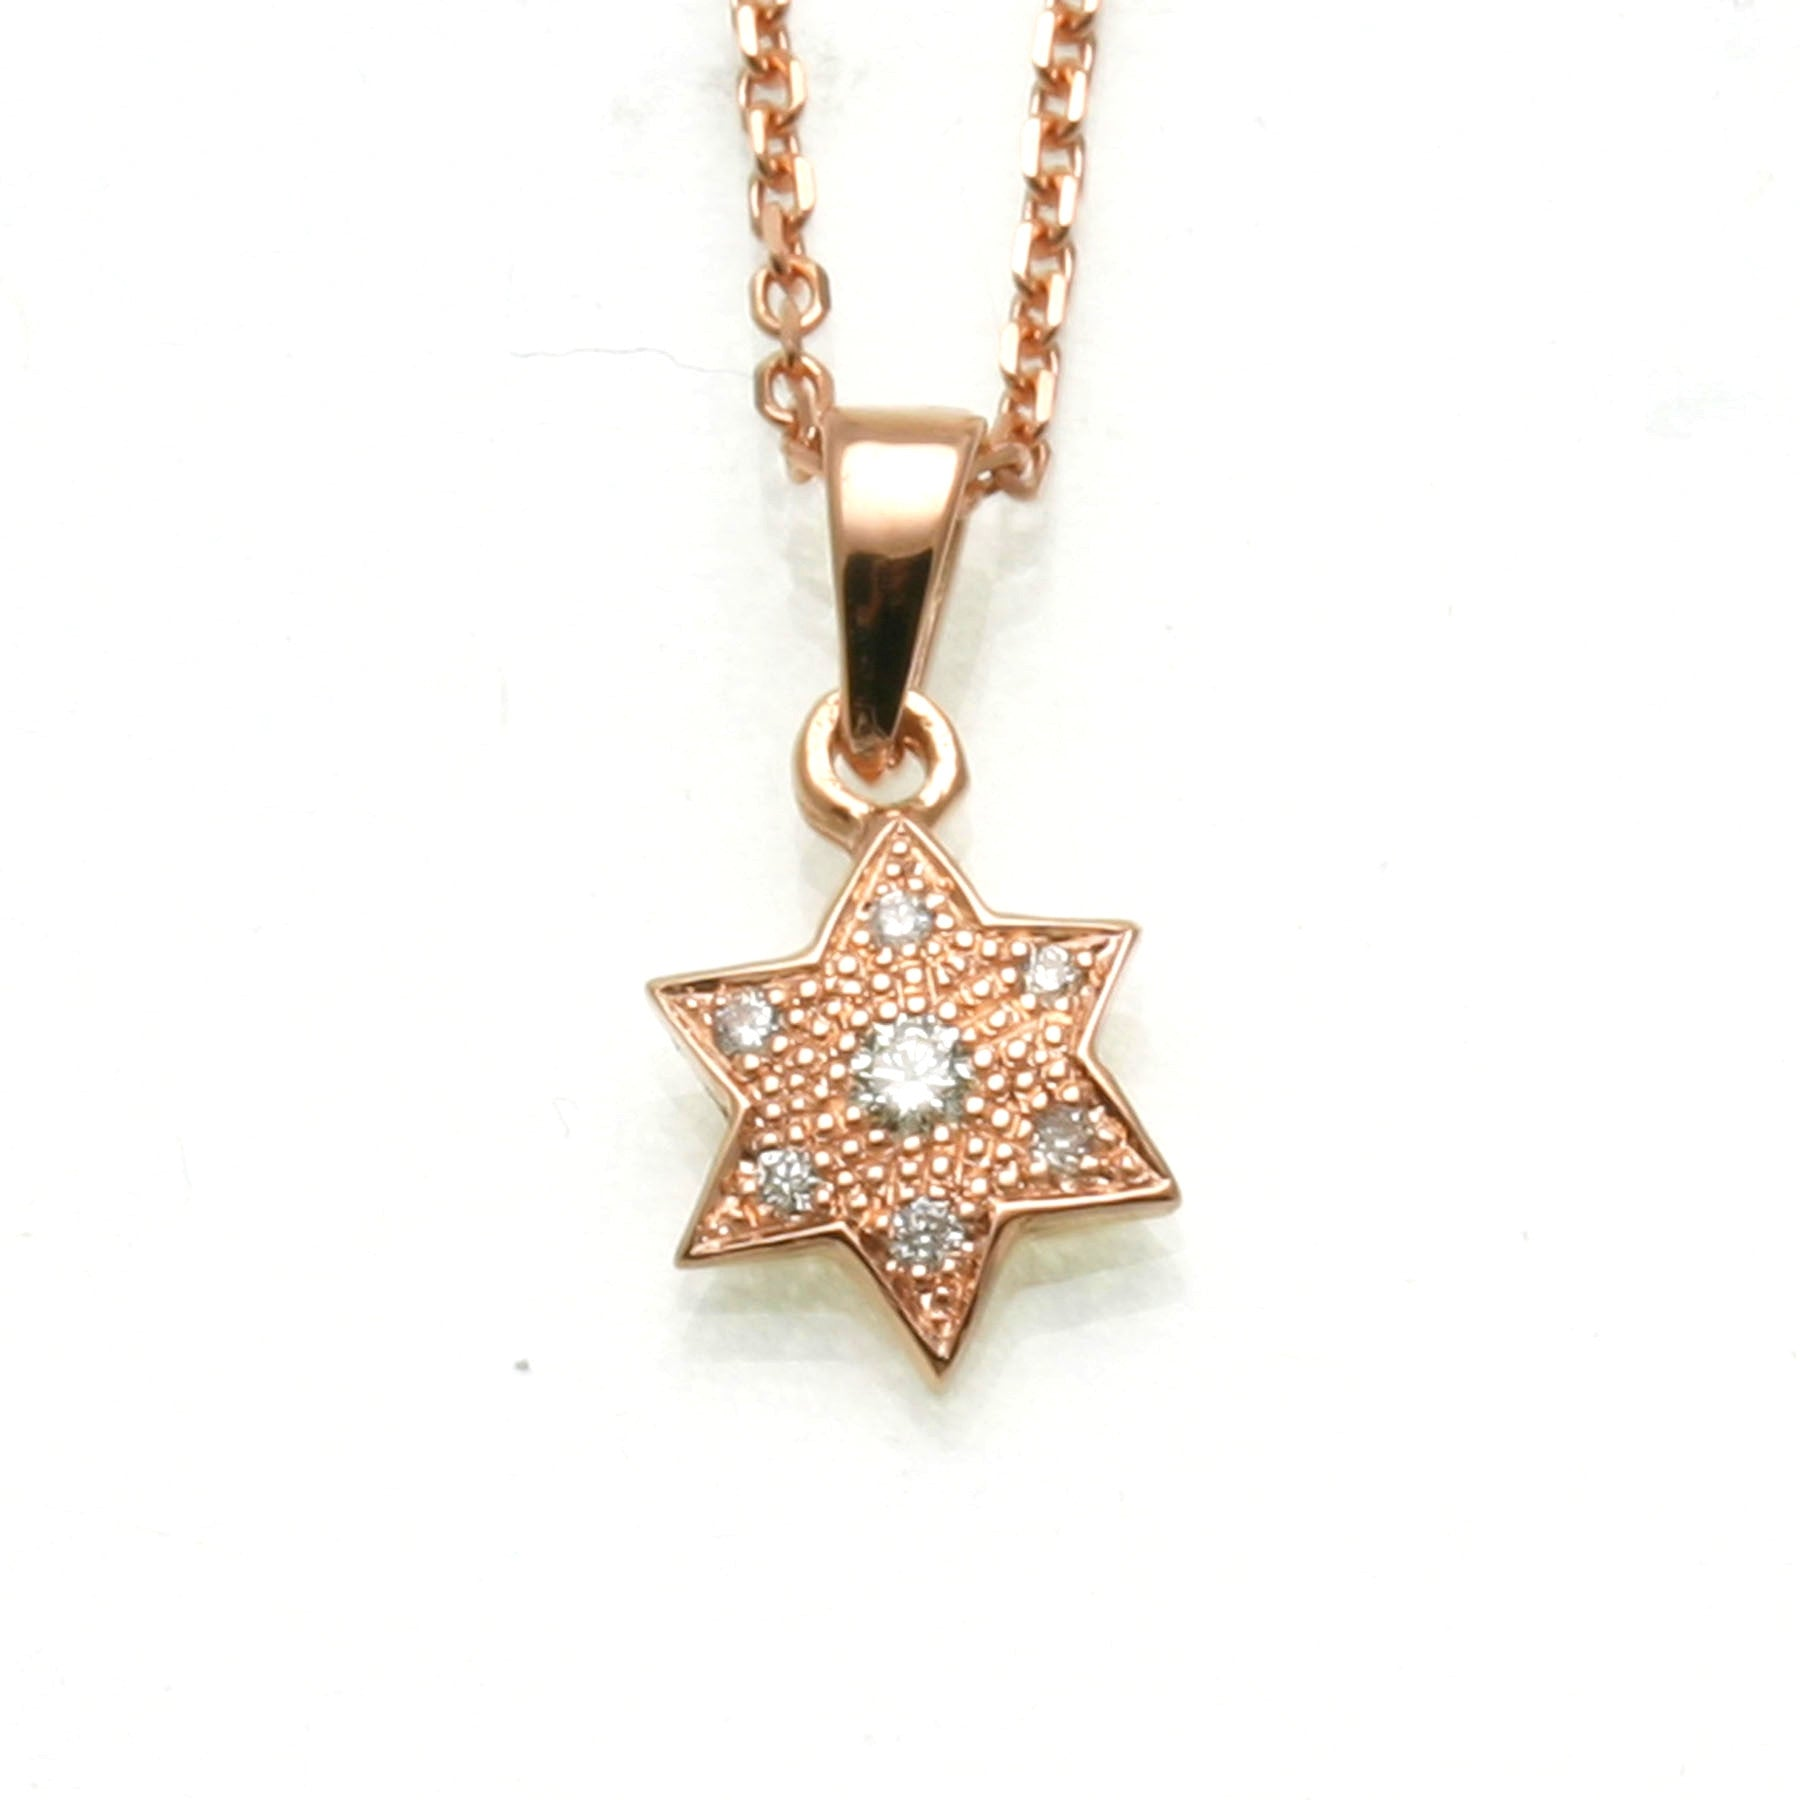 magen golia david star jewelry necklace crystal products